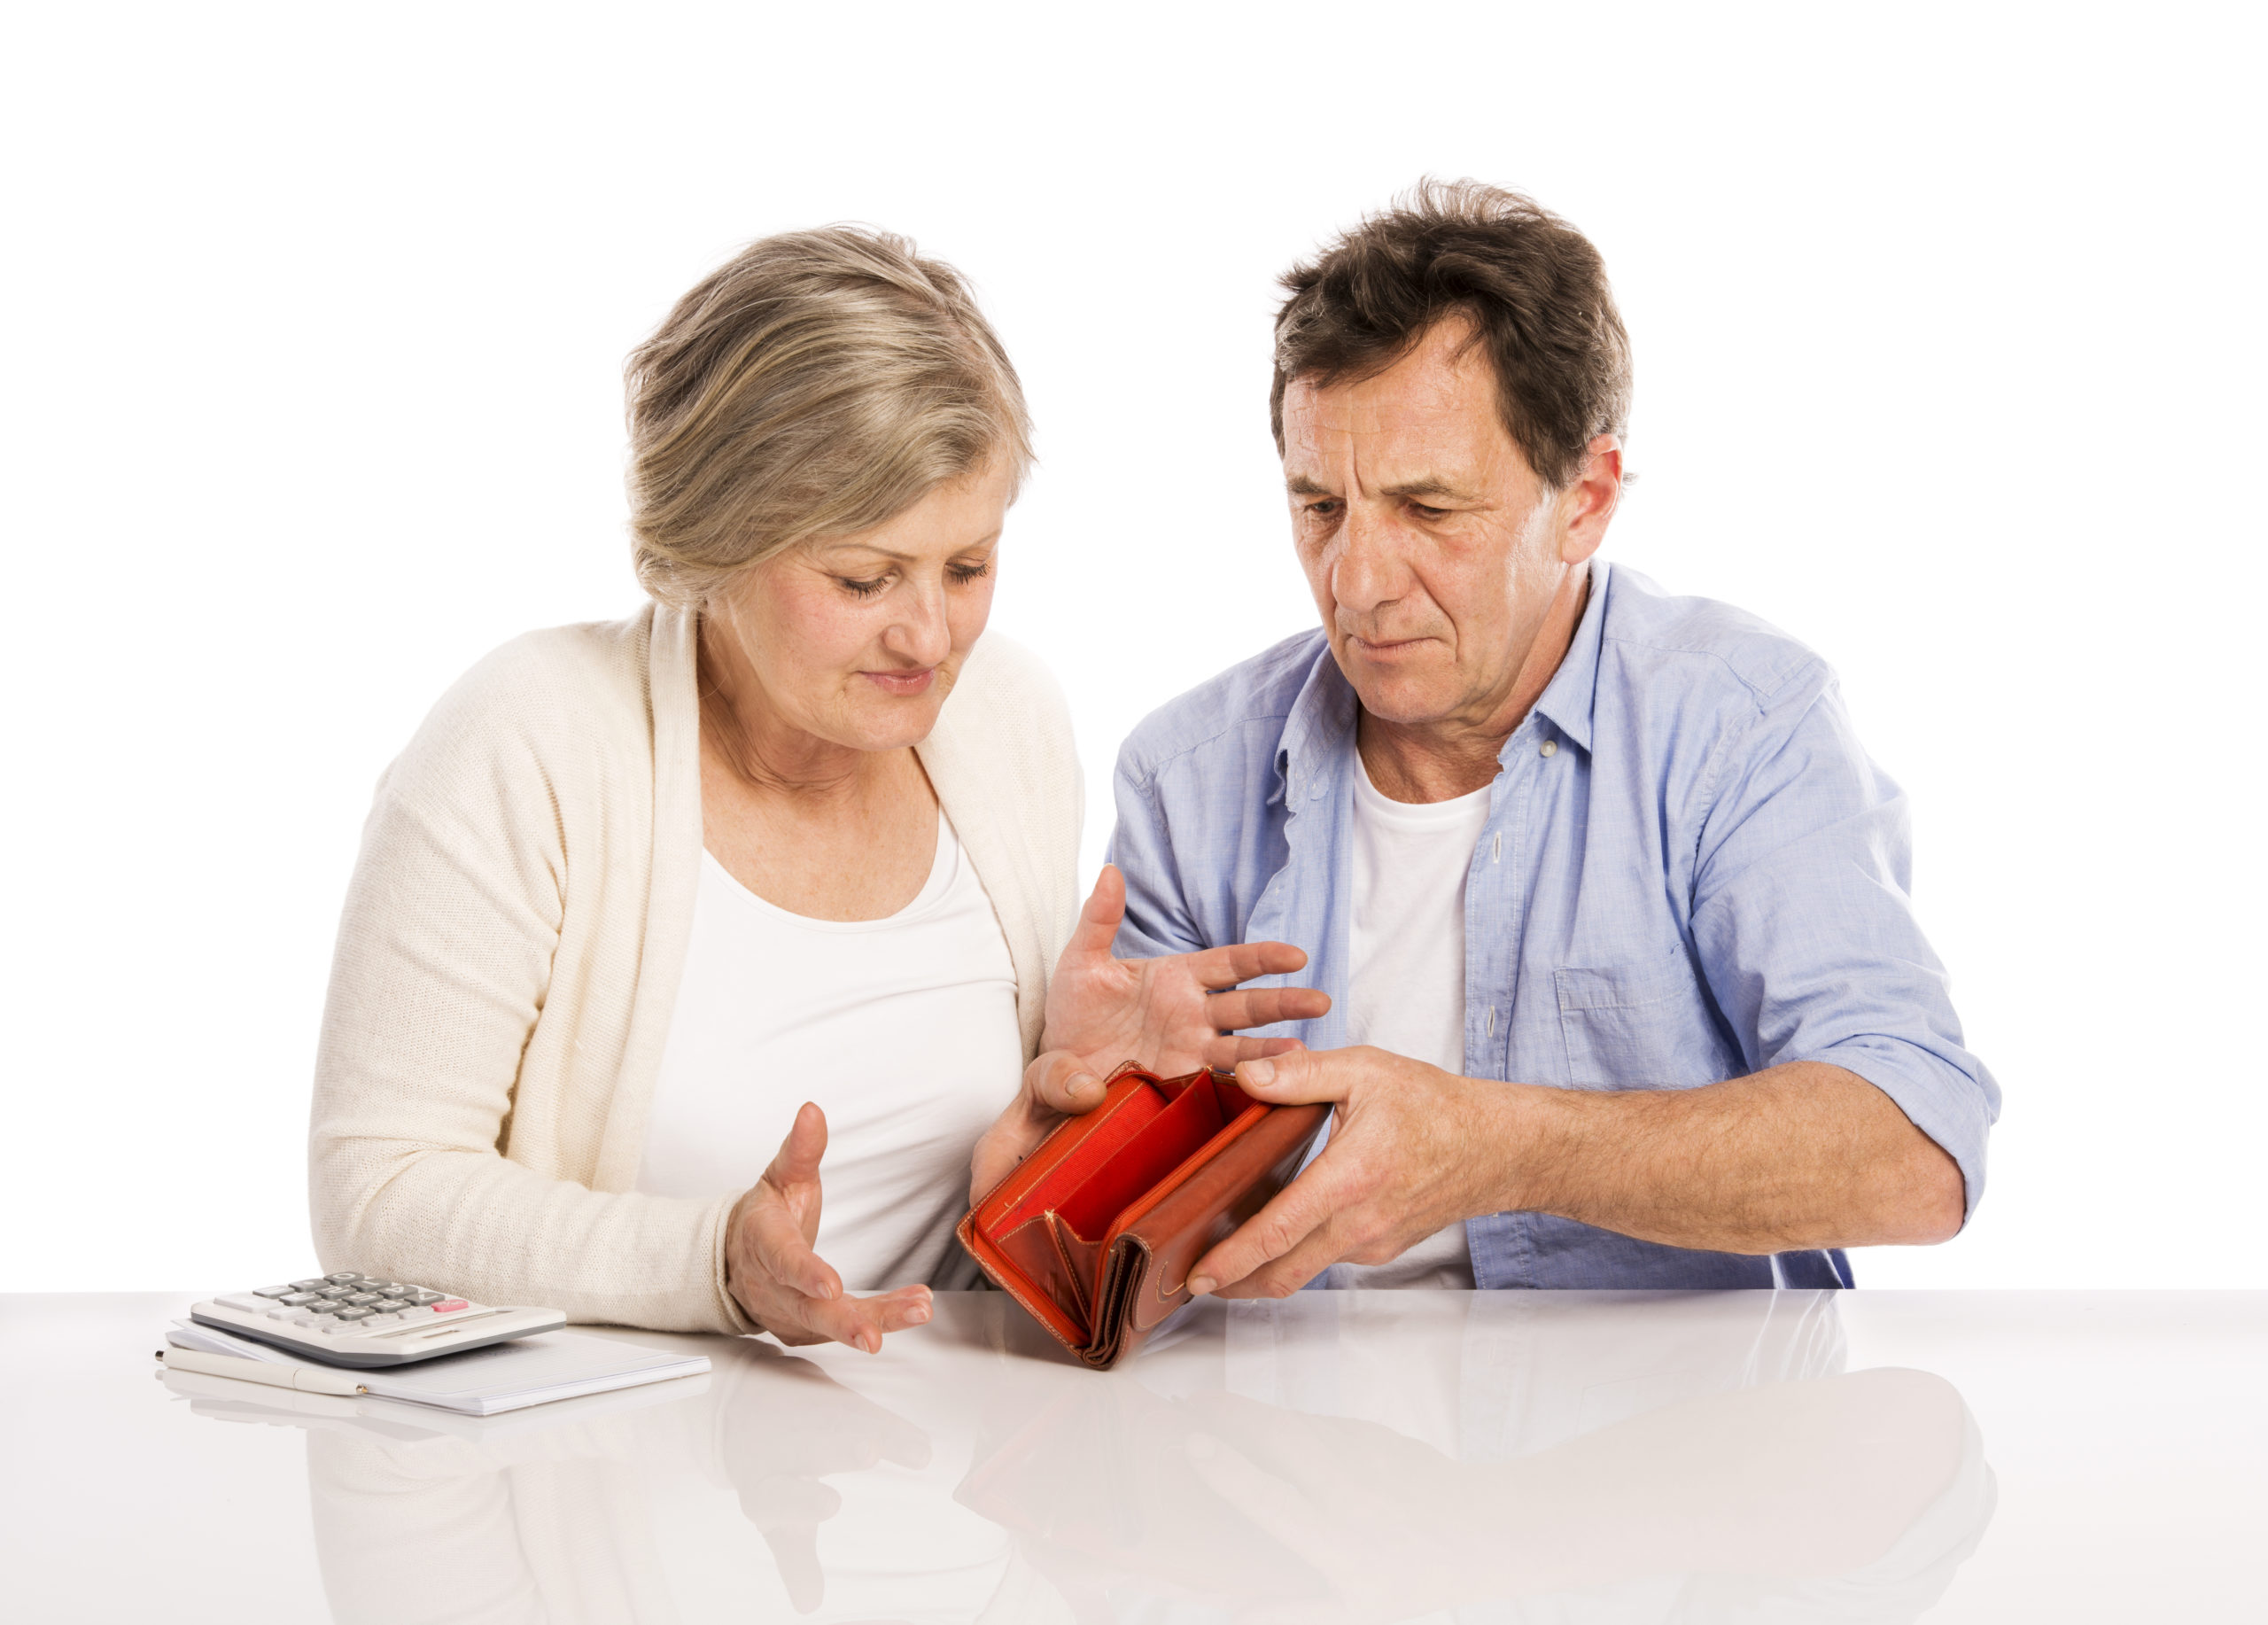 Senior couple with empty wallet discussing financial issues, isolated on white background